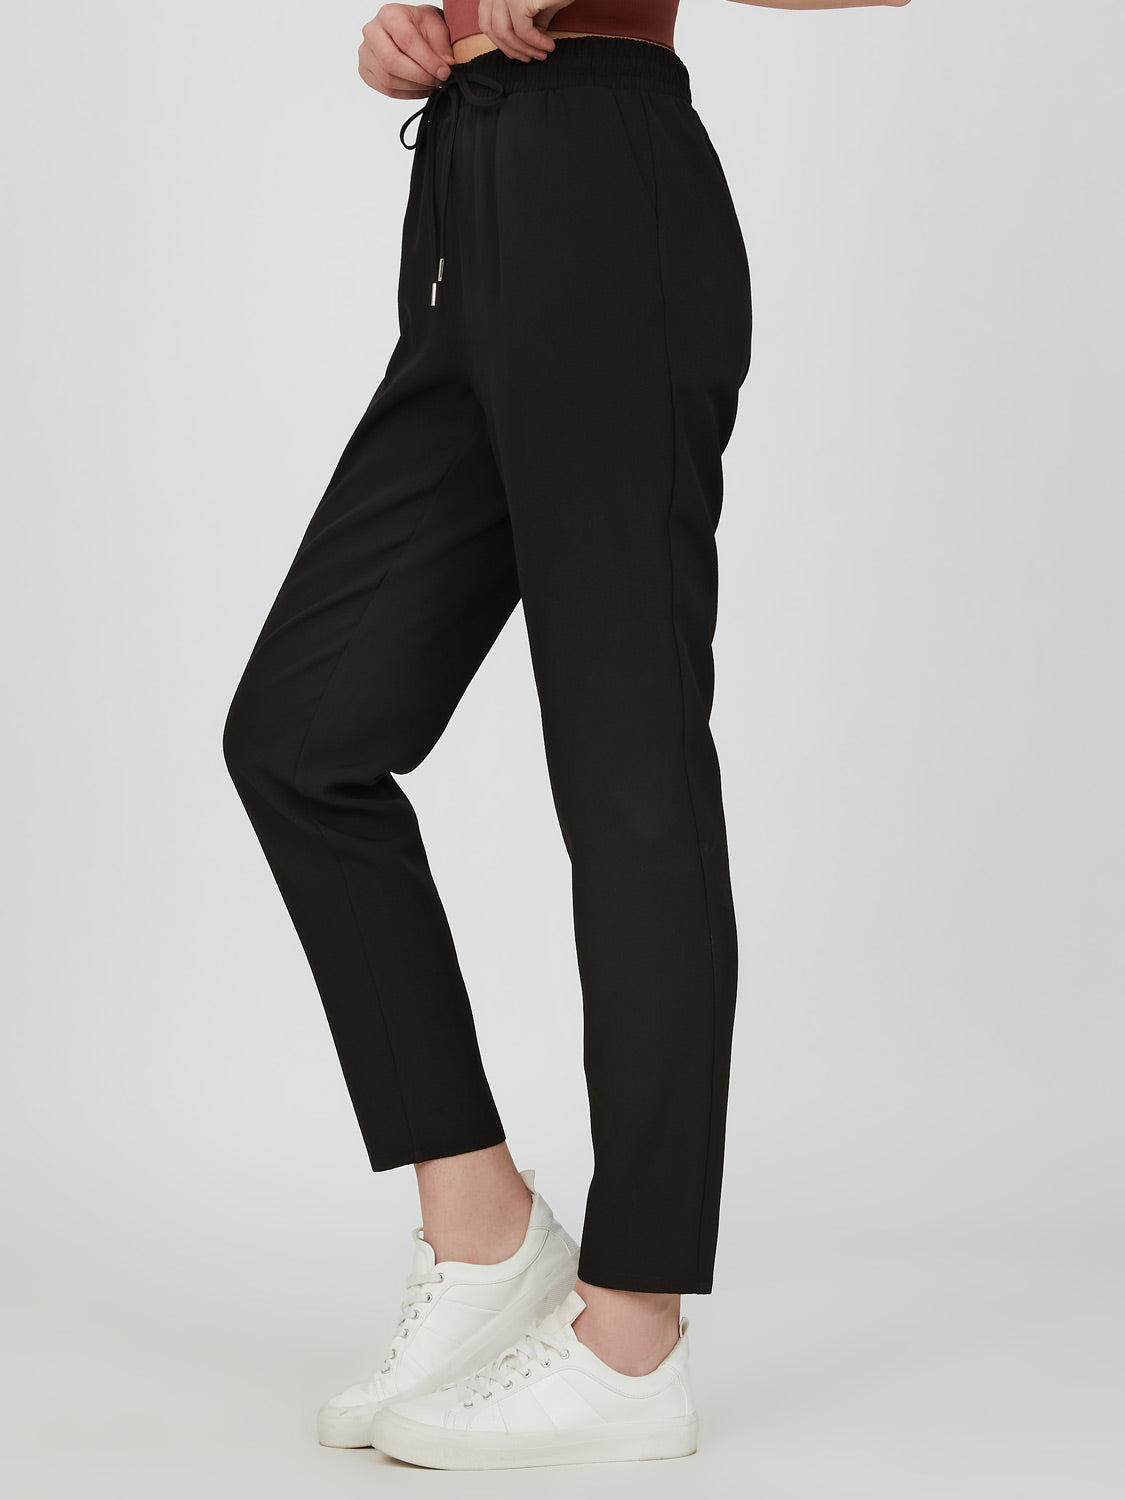 Straight Leg Stretchy Jogger